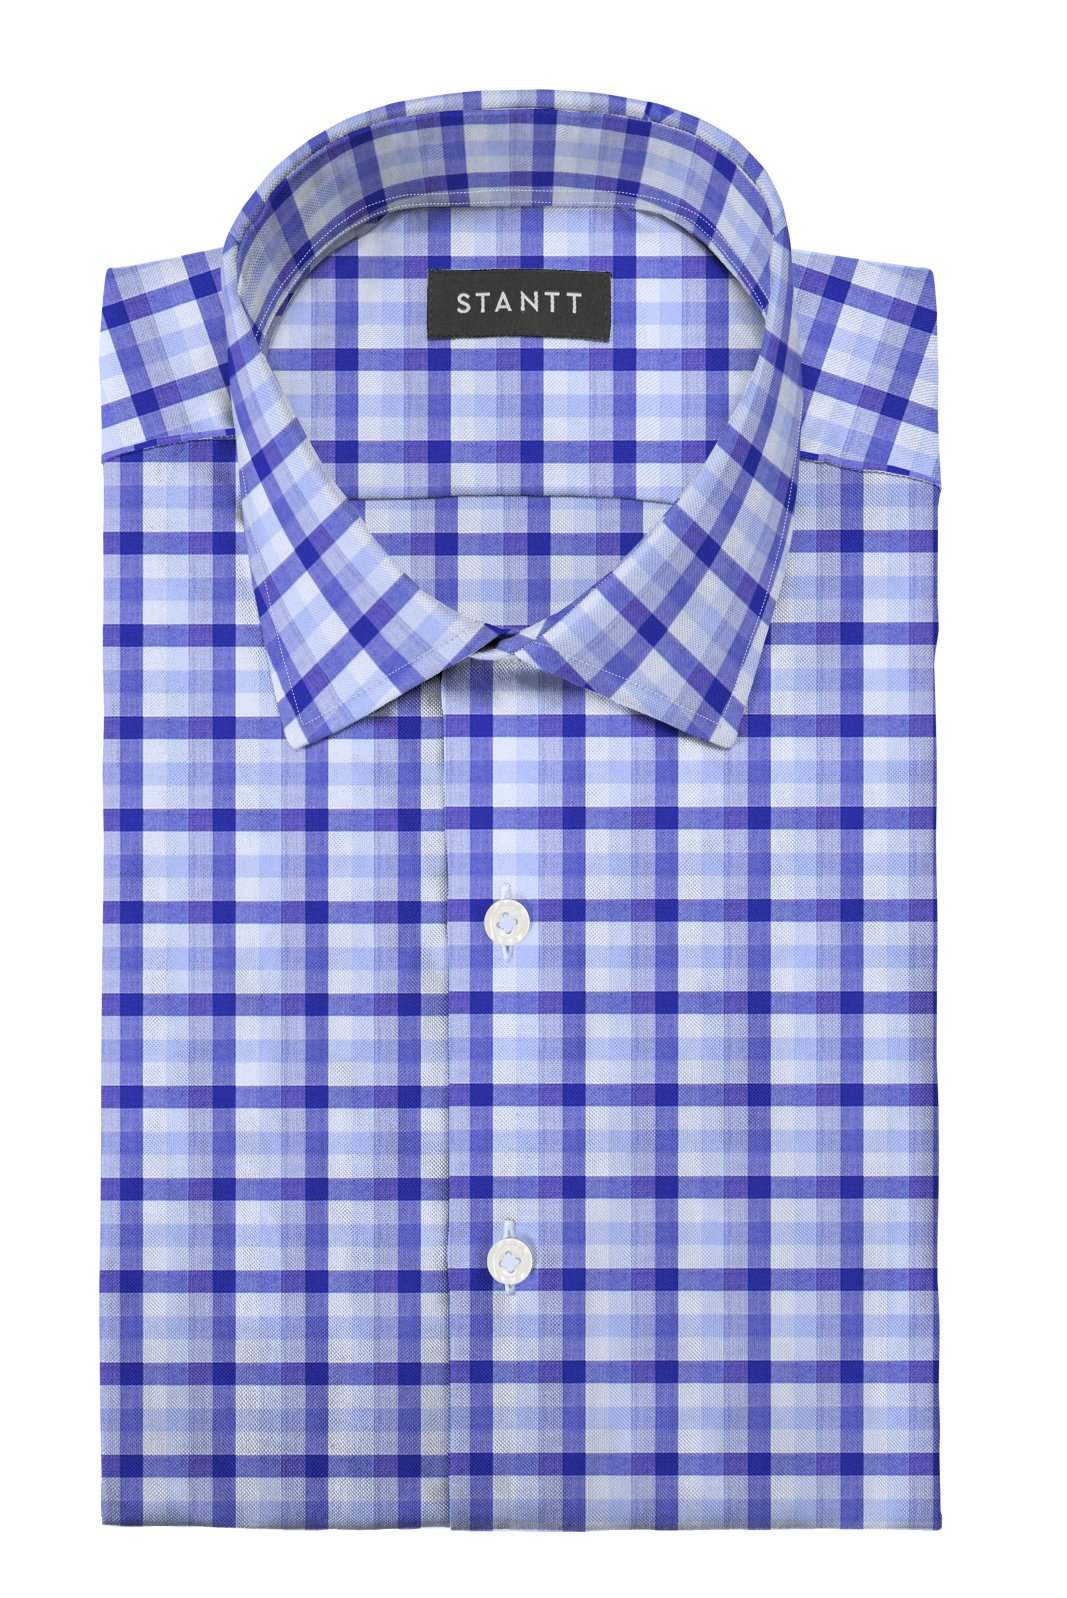 Blue Multi Check: Modified-Spread Collar, Barrel Cuff